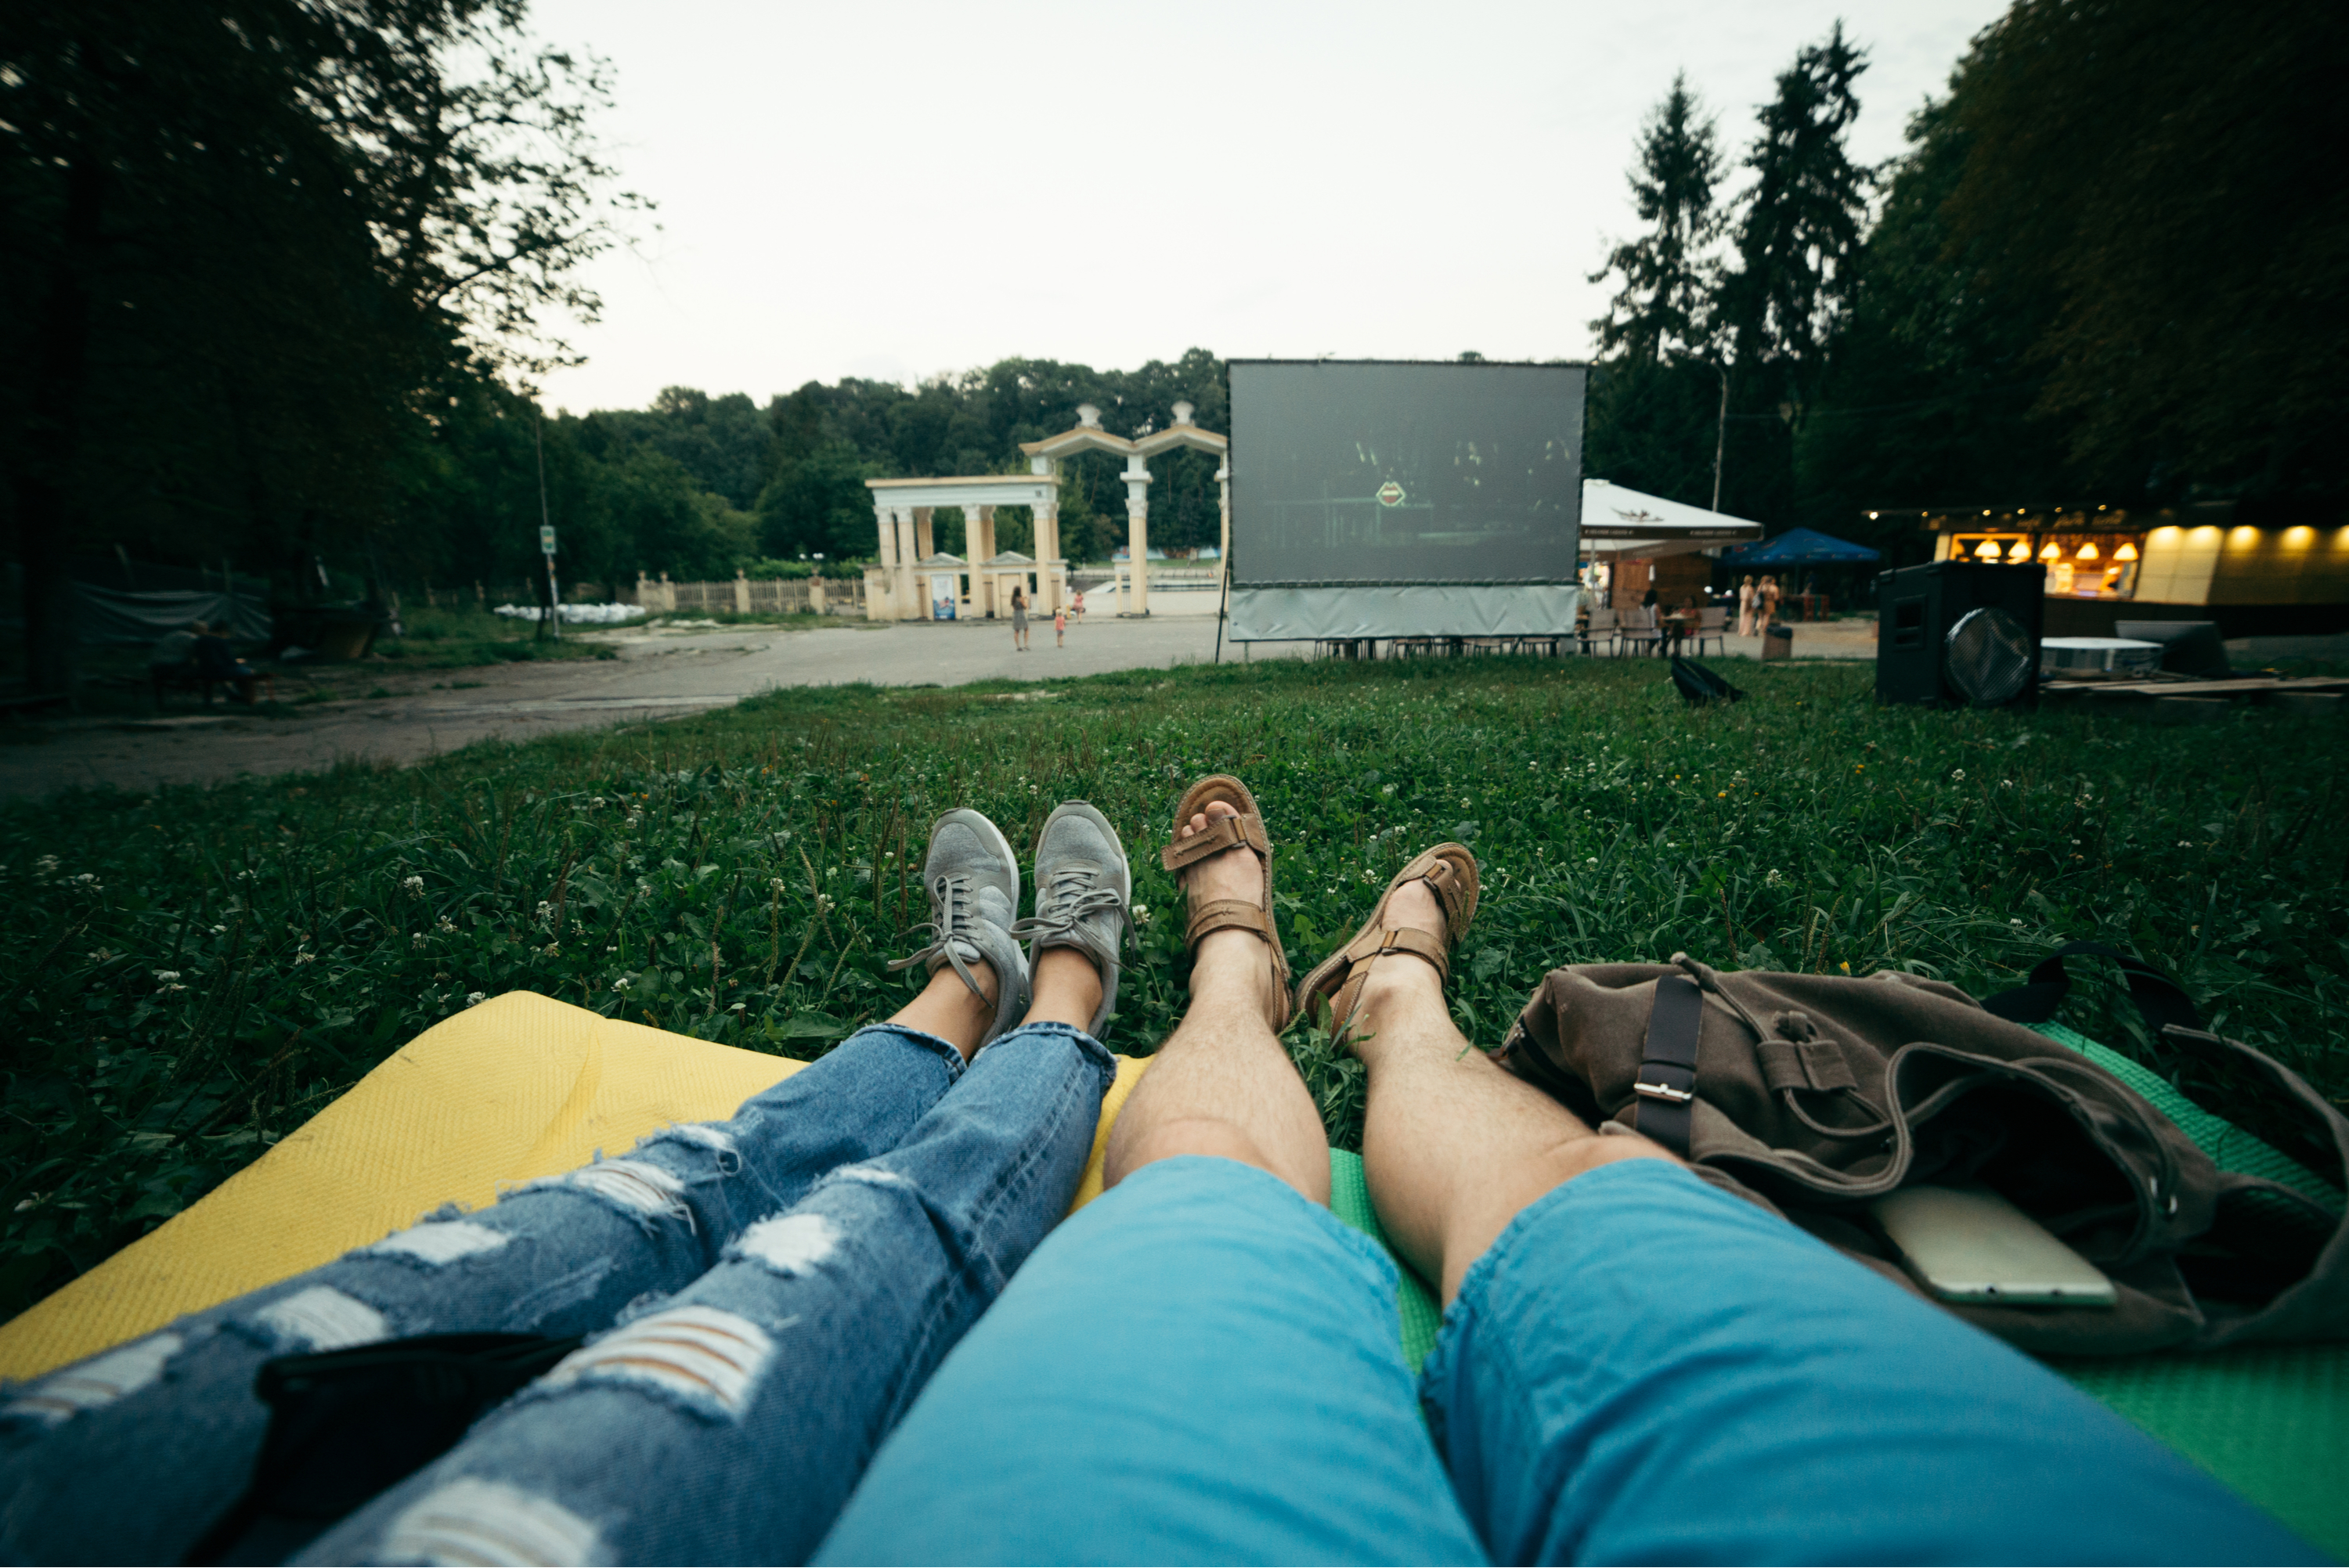 Movies To Watch Outside | best movies to watch outside | summer | summer activities | activities | movies | best movies to watch | movies to watch